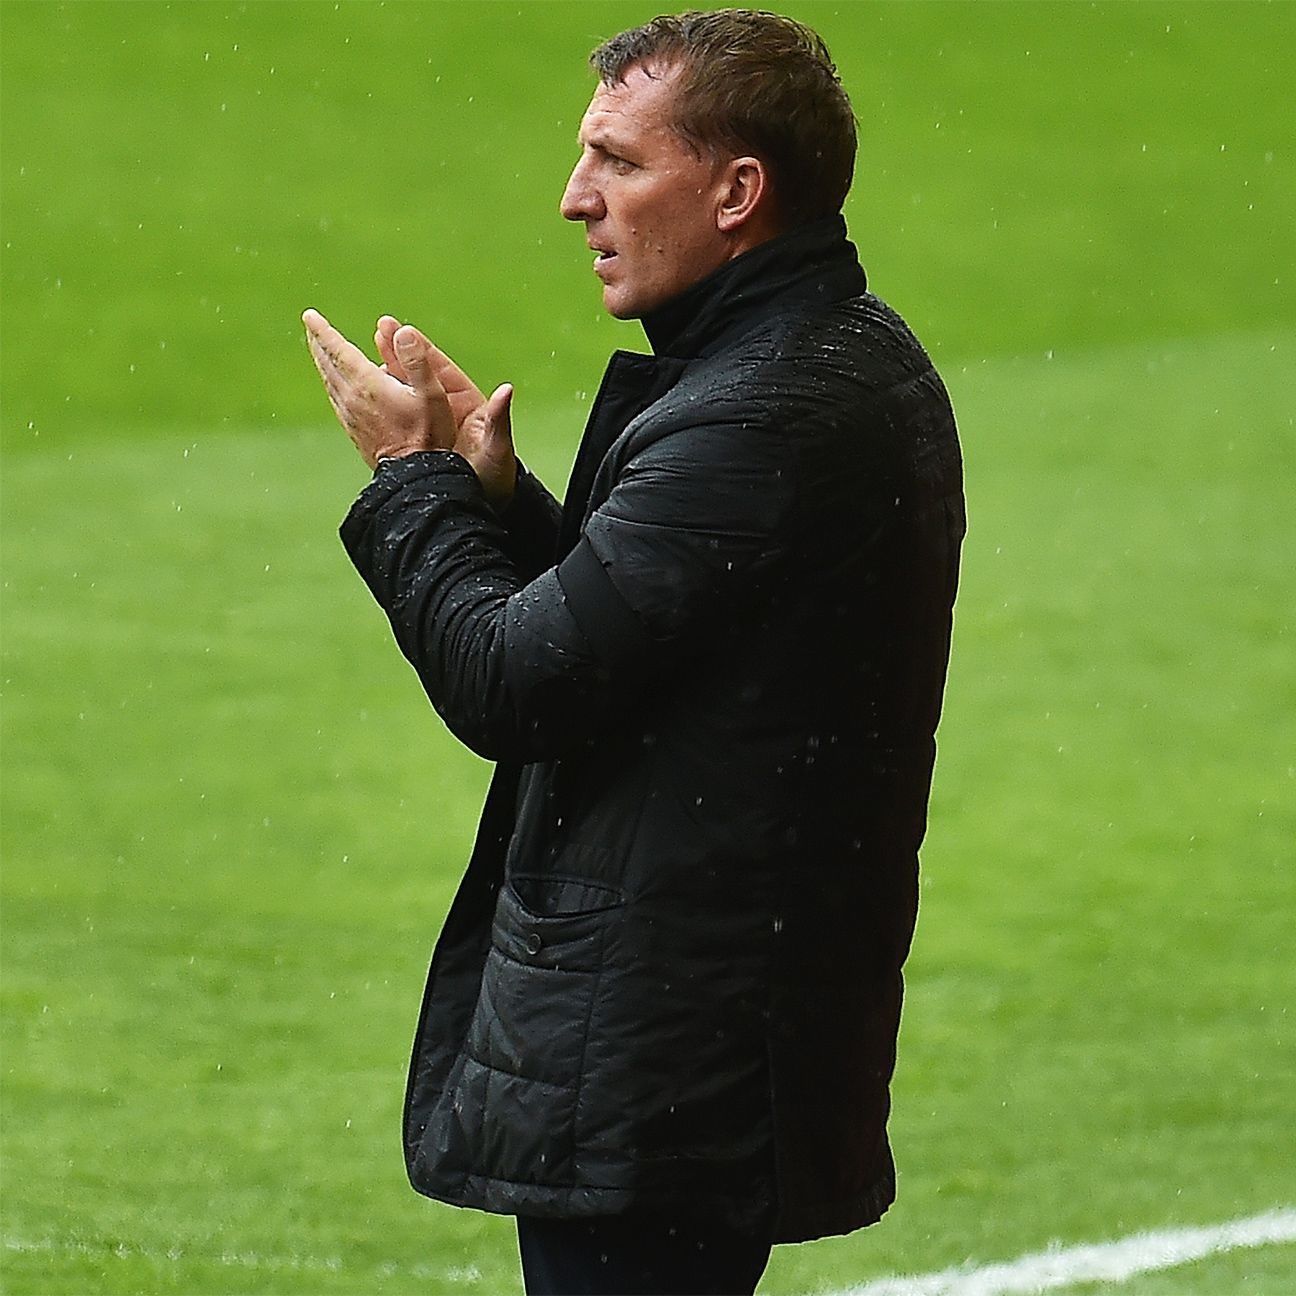 Saturday's victory was the first for Brendan Rodgers' Liverpool since April 13.